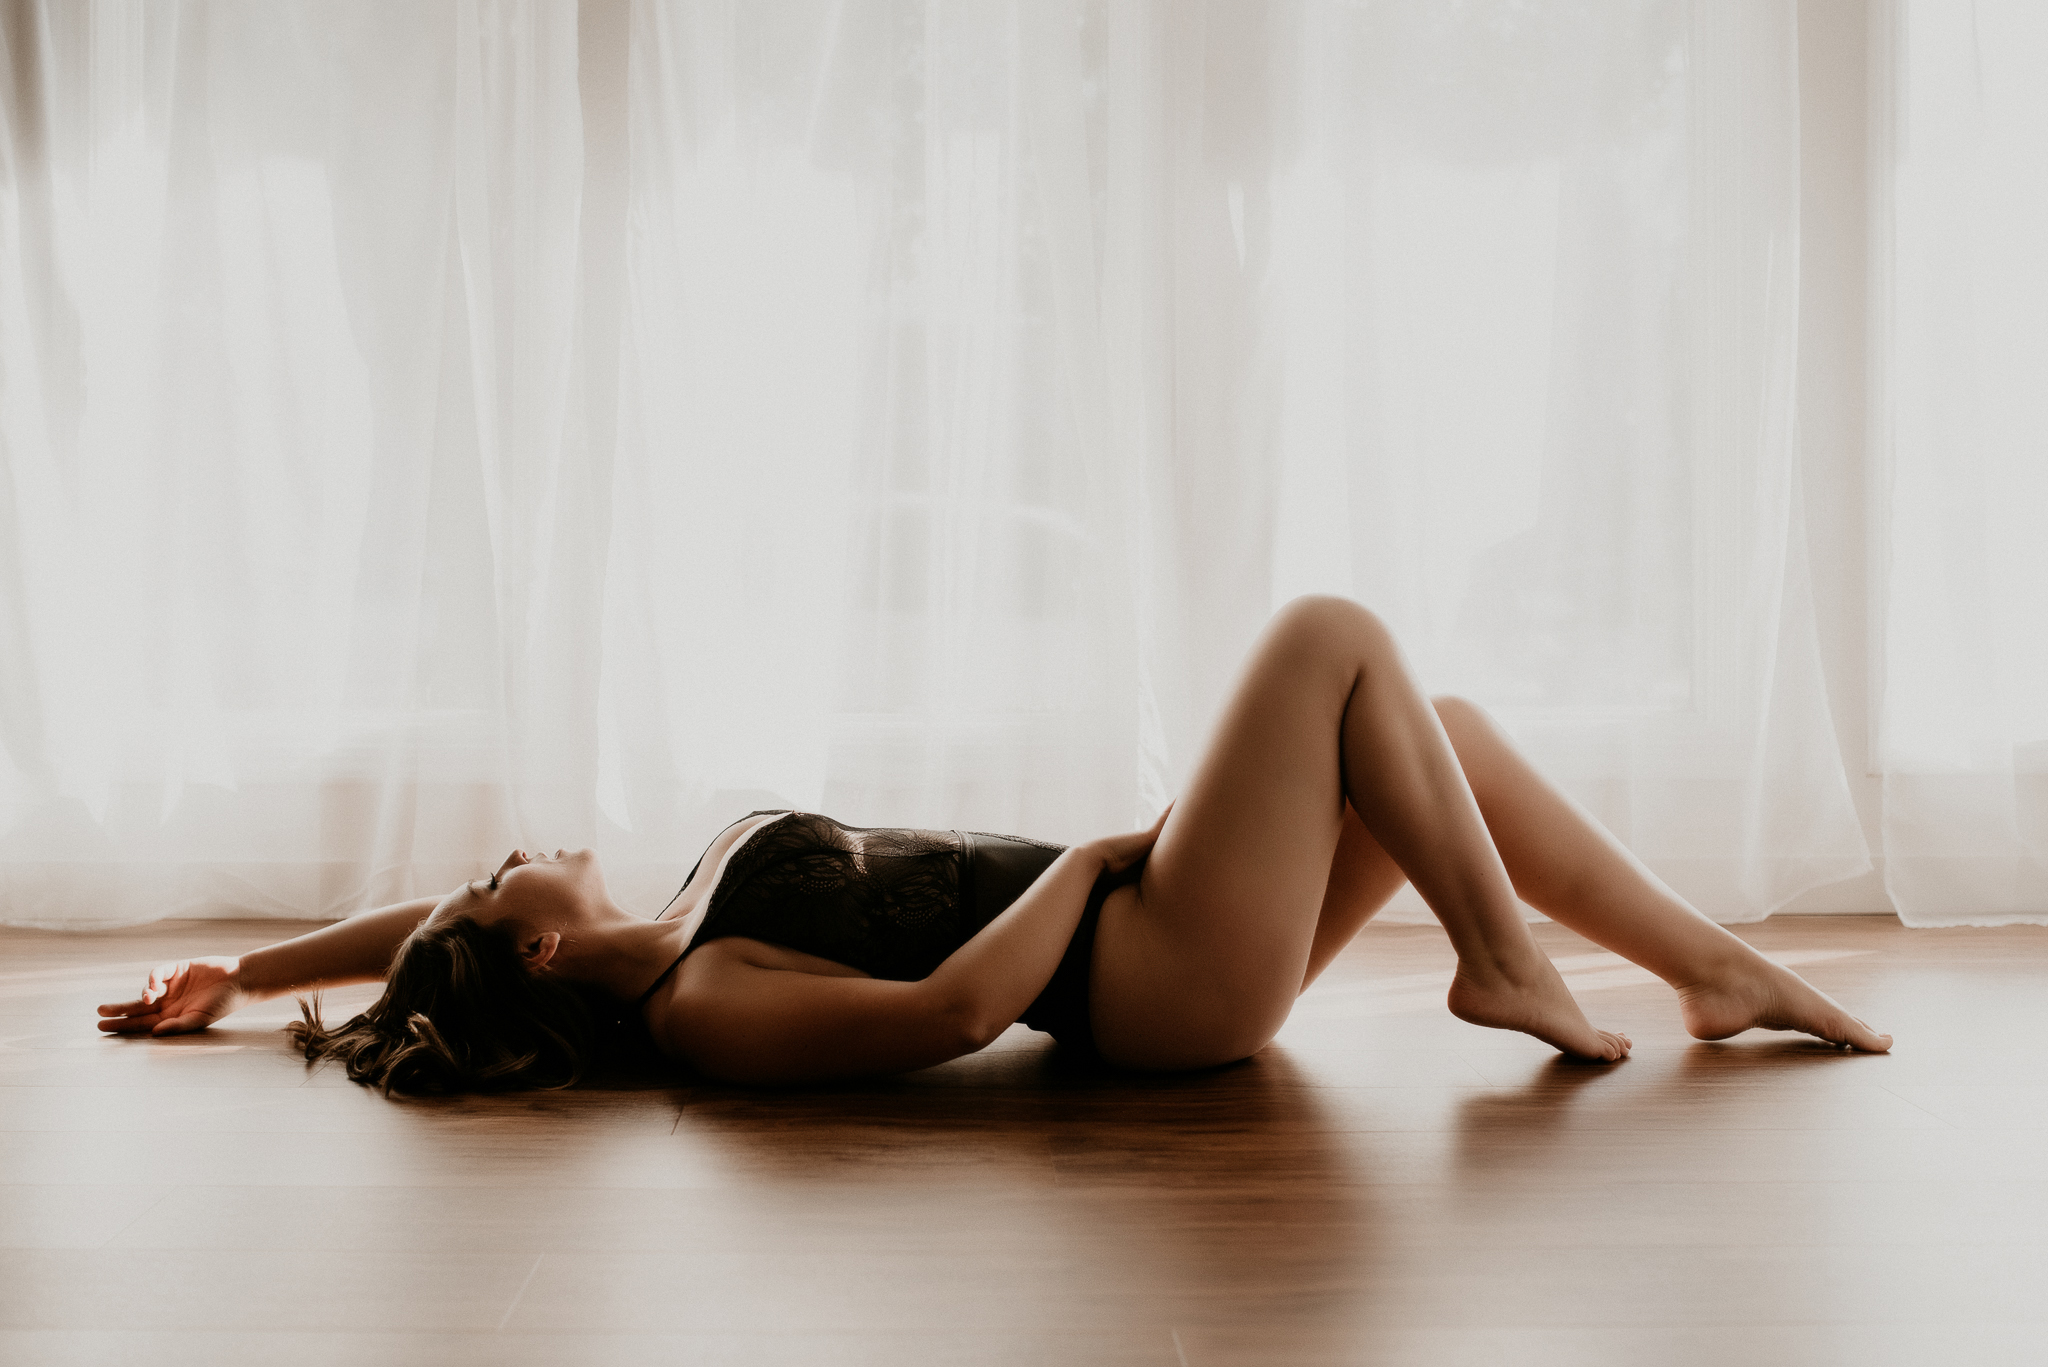 Boise boudoir photographer Makayla Madden Photography Boudoir by Kayla Idaho Top Boudoir Photographers Oregon Boudoir Photography Natural Light Studio 870 Full Service Boudoir